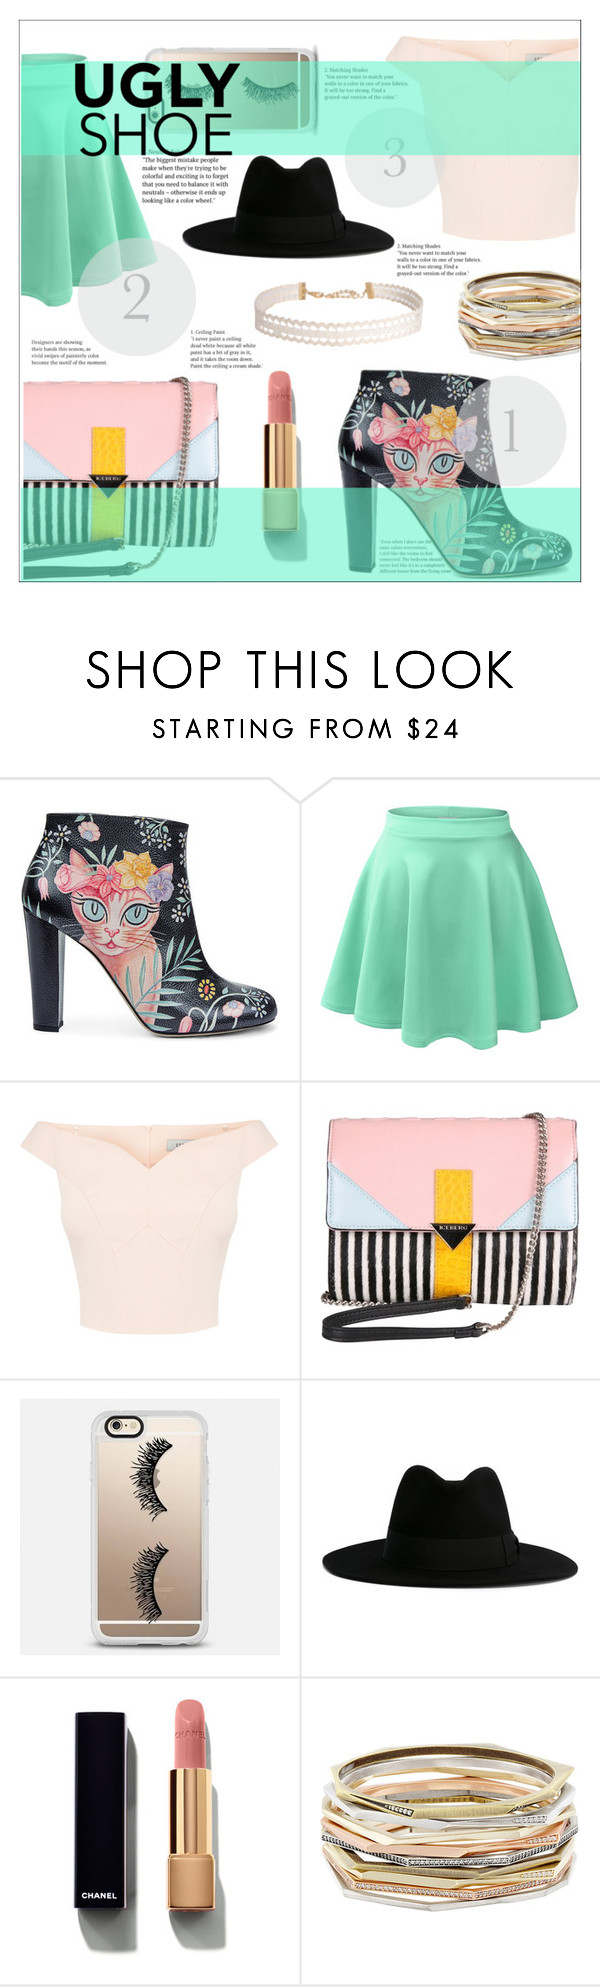 """""""Ugly shoe"""" by iamasmallgiant ❤ liked on Polyvore featuring Camilla Elphick, LE3NO, Iceberg, Casetify, Yves Saint Laurent, Chanel, Kendra Scott and Humble Chic"""